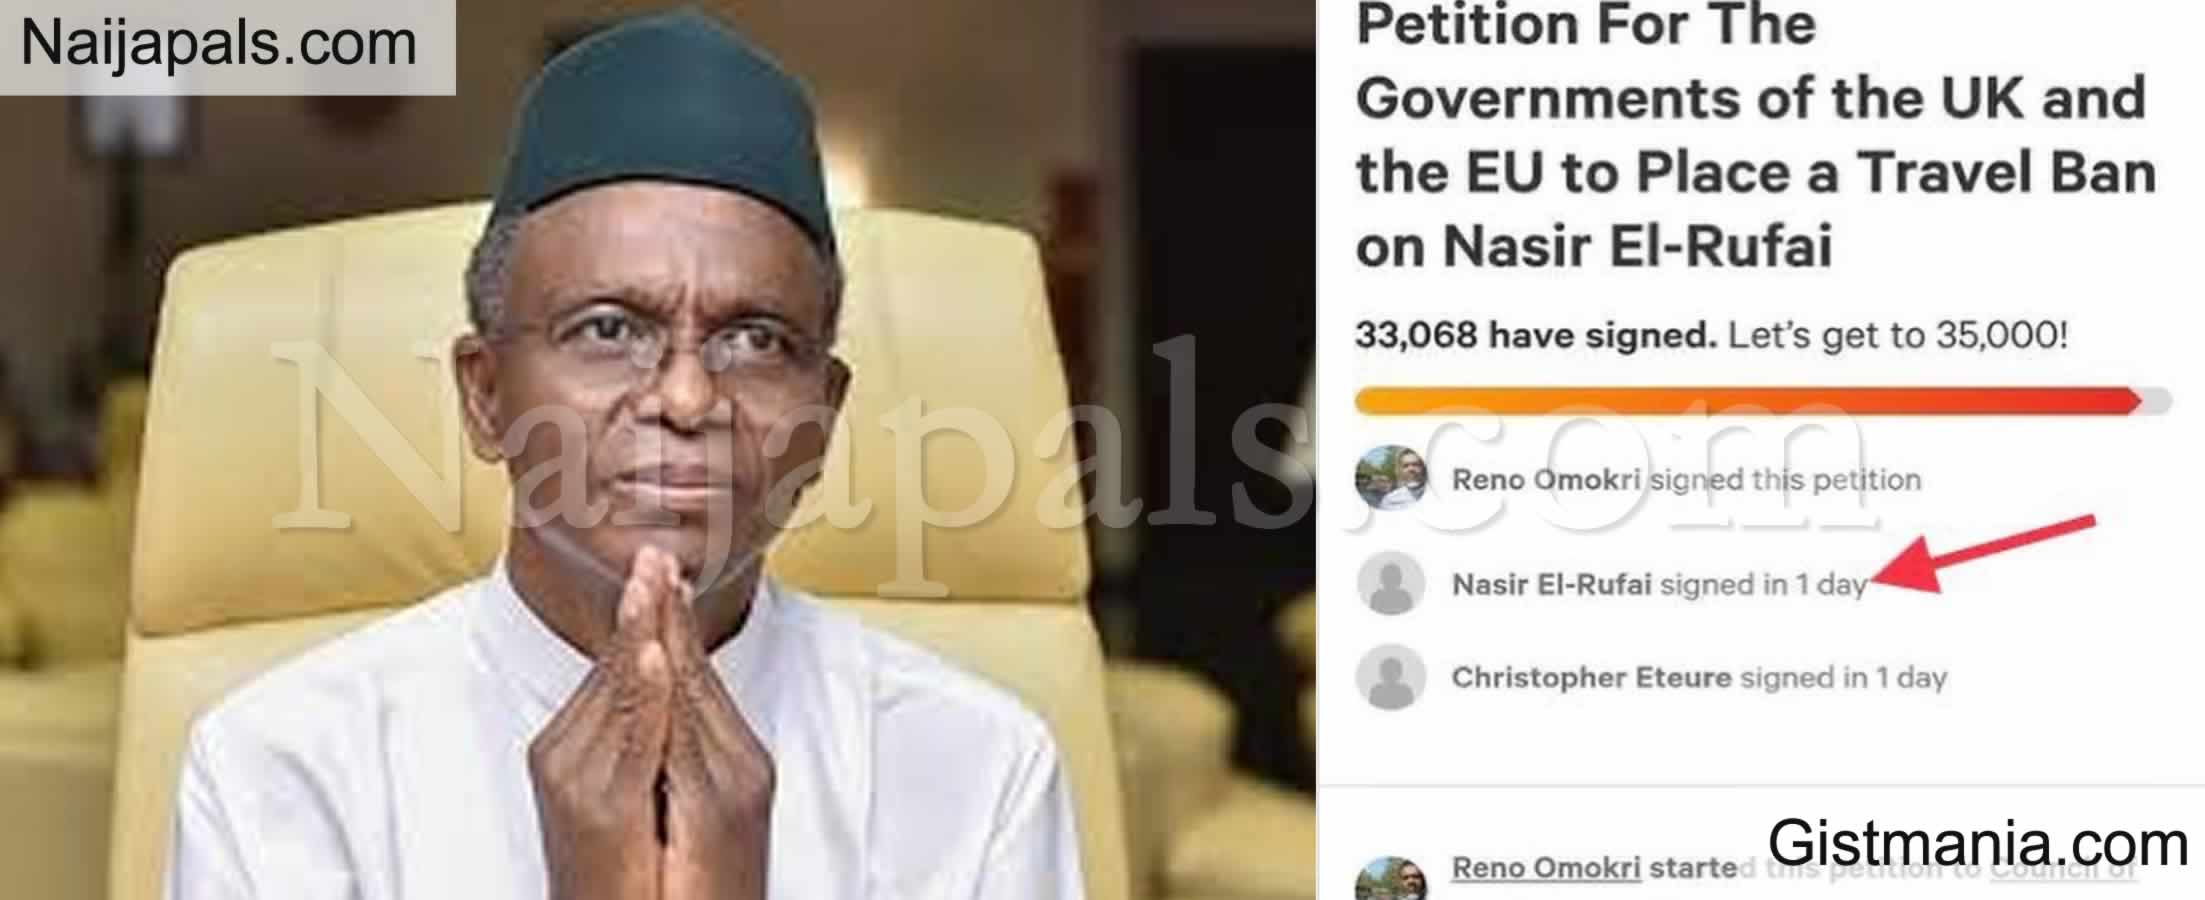 <img alt='.' class='lazyload' data-src='https://img.gistmania.com/emot/shocked.gif' /> BUSTED! <b>El-Rufai Caught Spying As Almost 45,000 Sign Petition For EU/UK To Travel Ban El-Rufai</b>